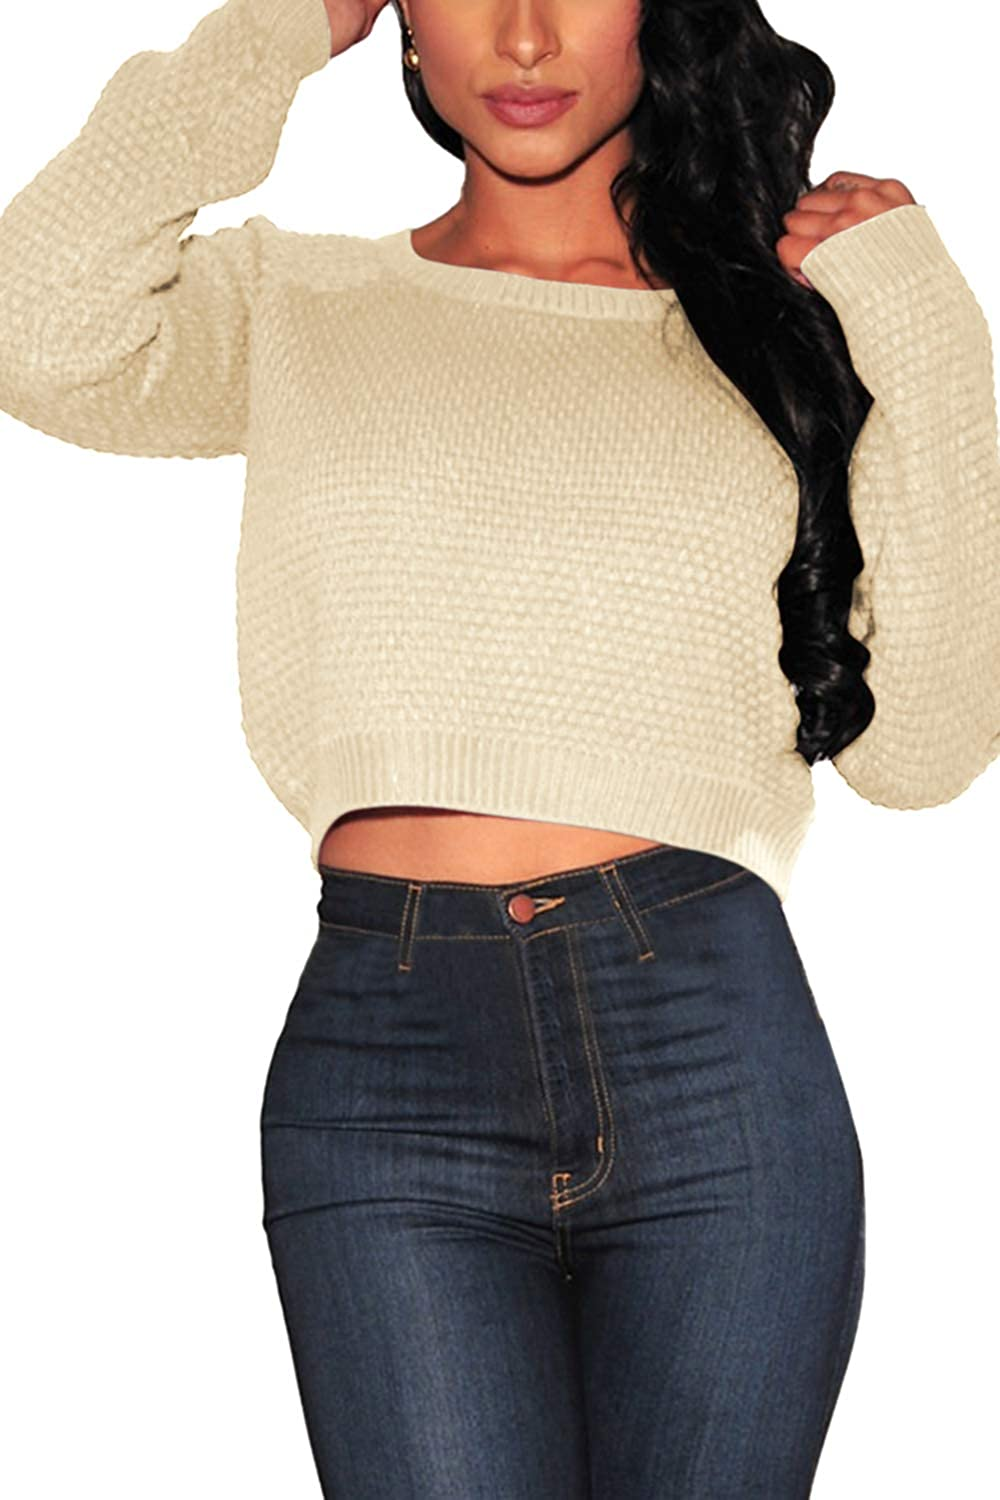 4596ddc7ced69 Pink Queen Women s Knit Long Sleeves Cropped Sweater Top at Amazon Women s  Clothing store